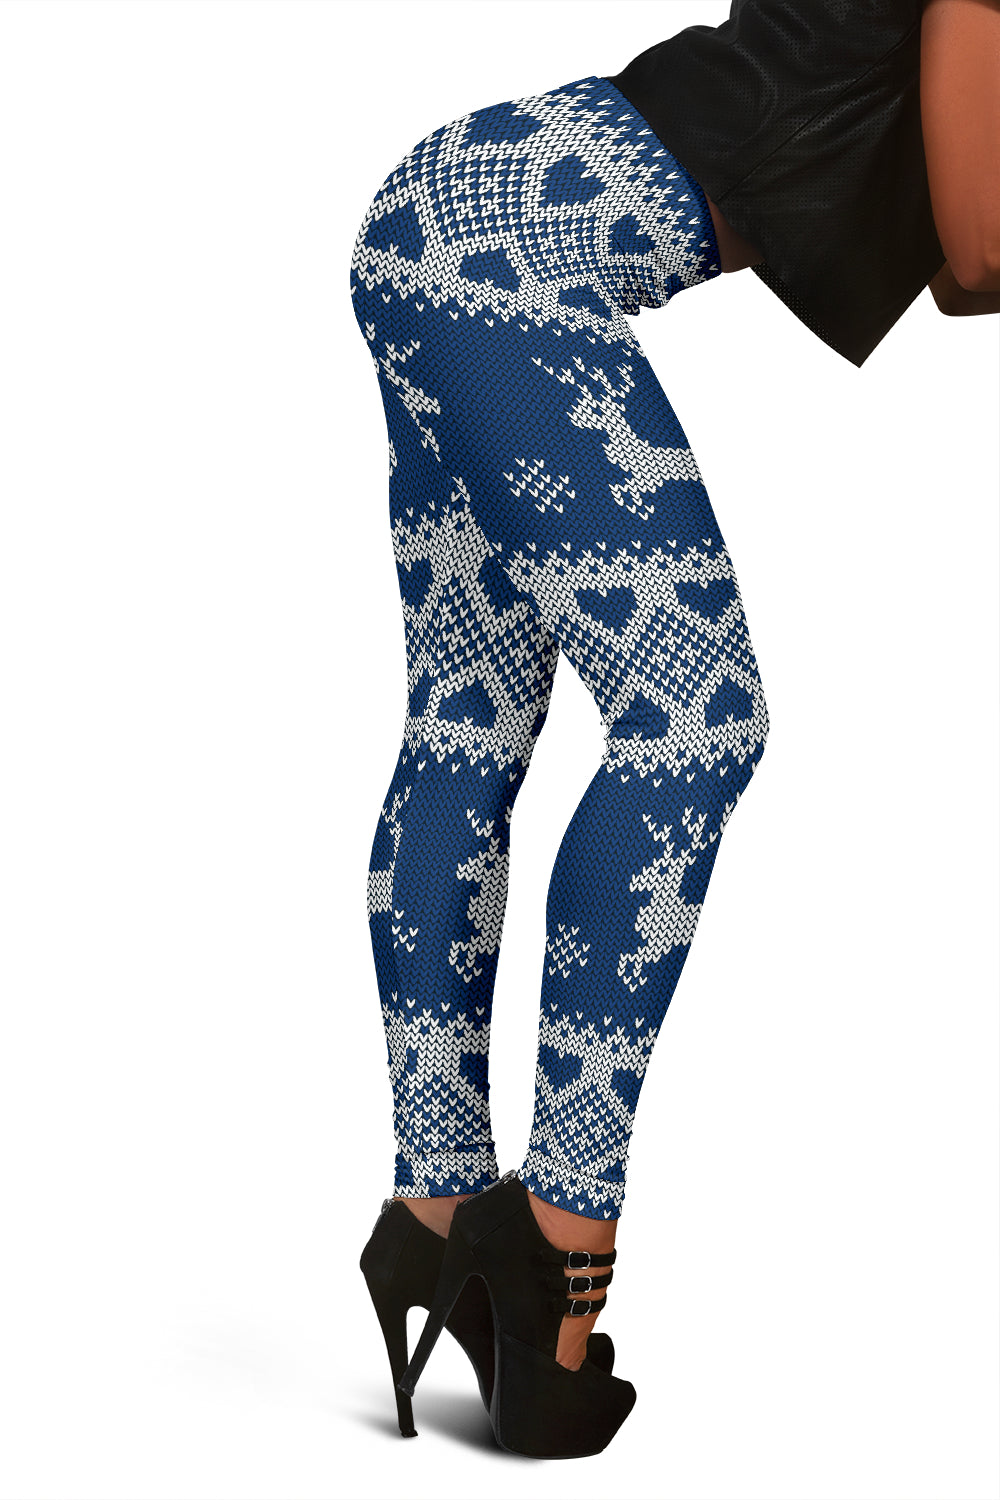 Blue Ugly Christmas Leggings With Reindeer And Hearts